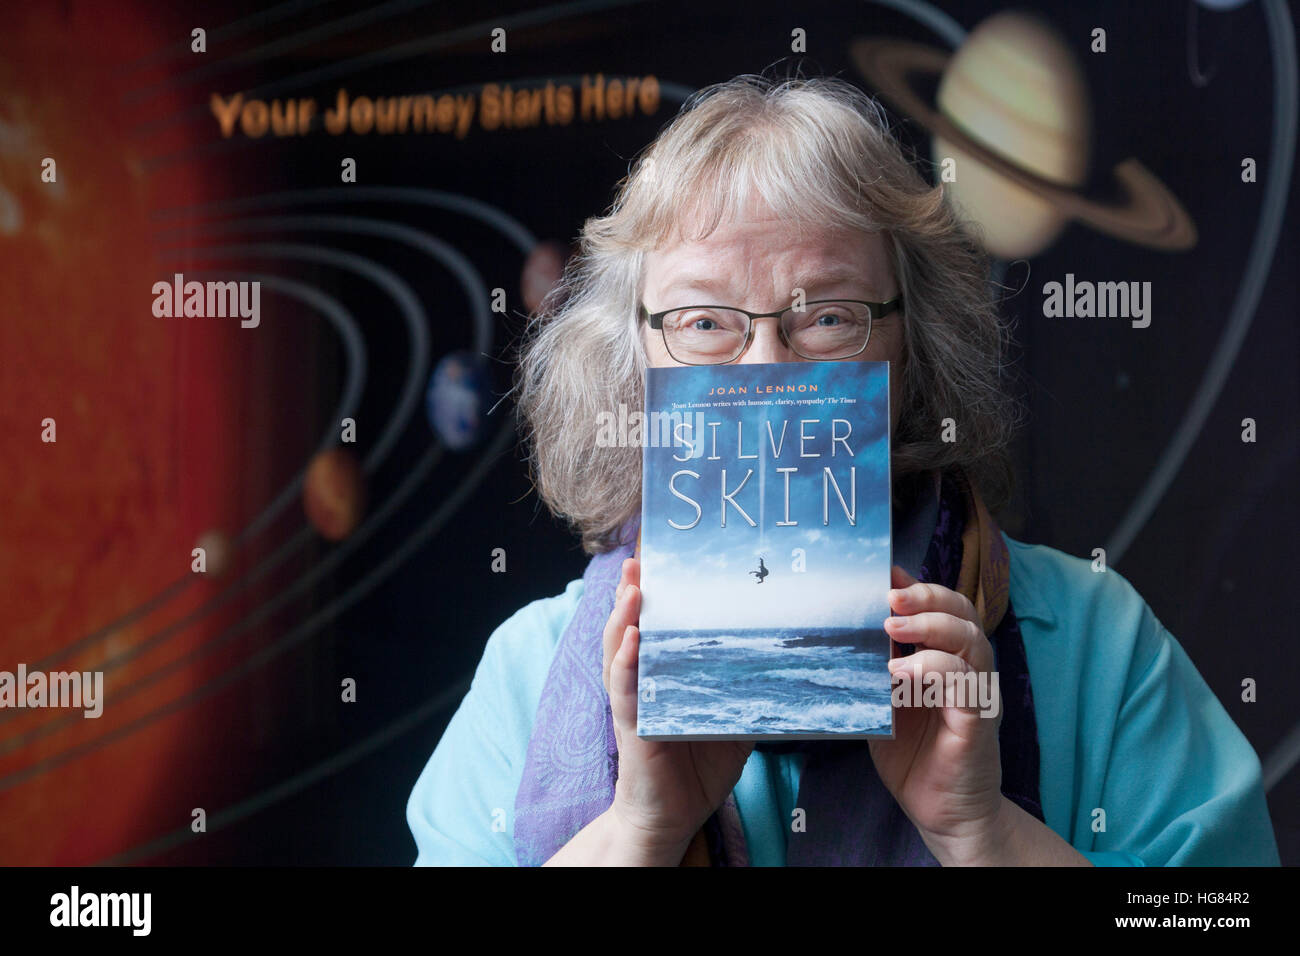 Joan Lennon, children's and young adult sci-fi and fantasy author. Stock Photo